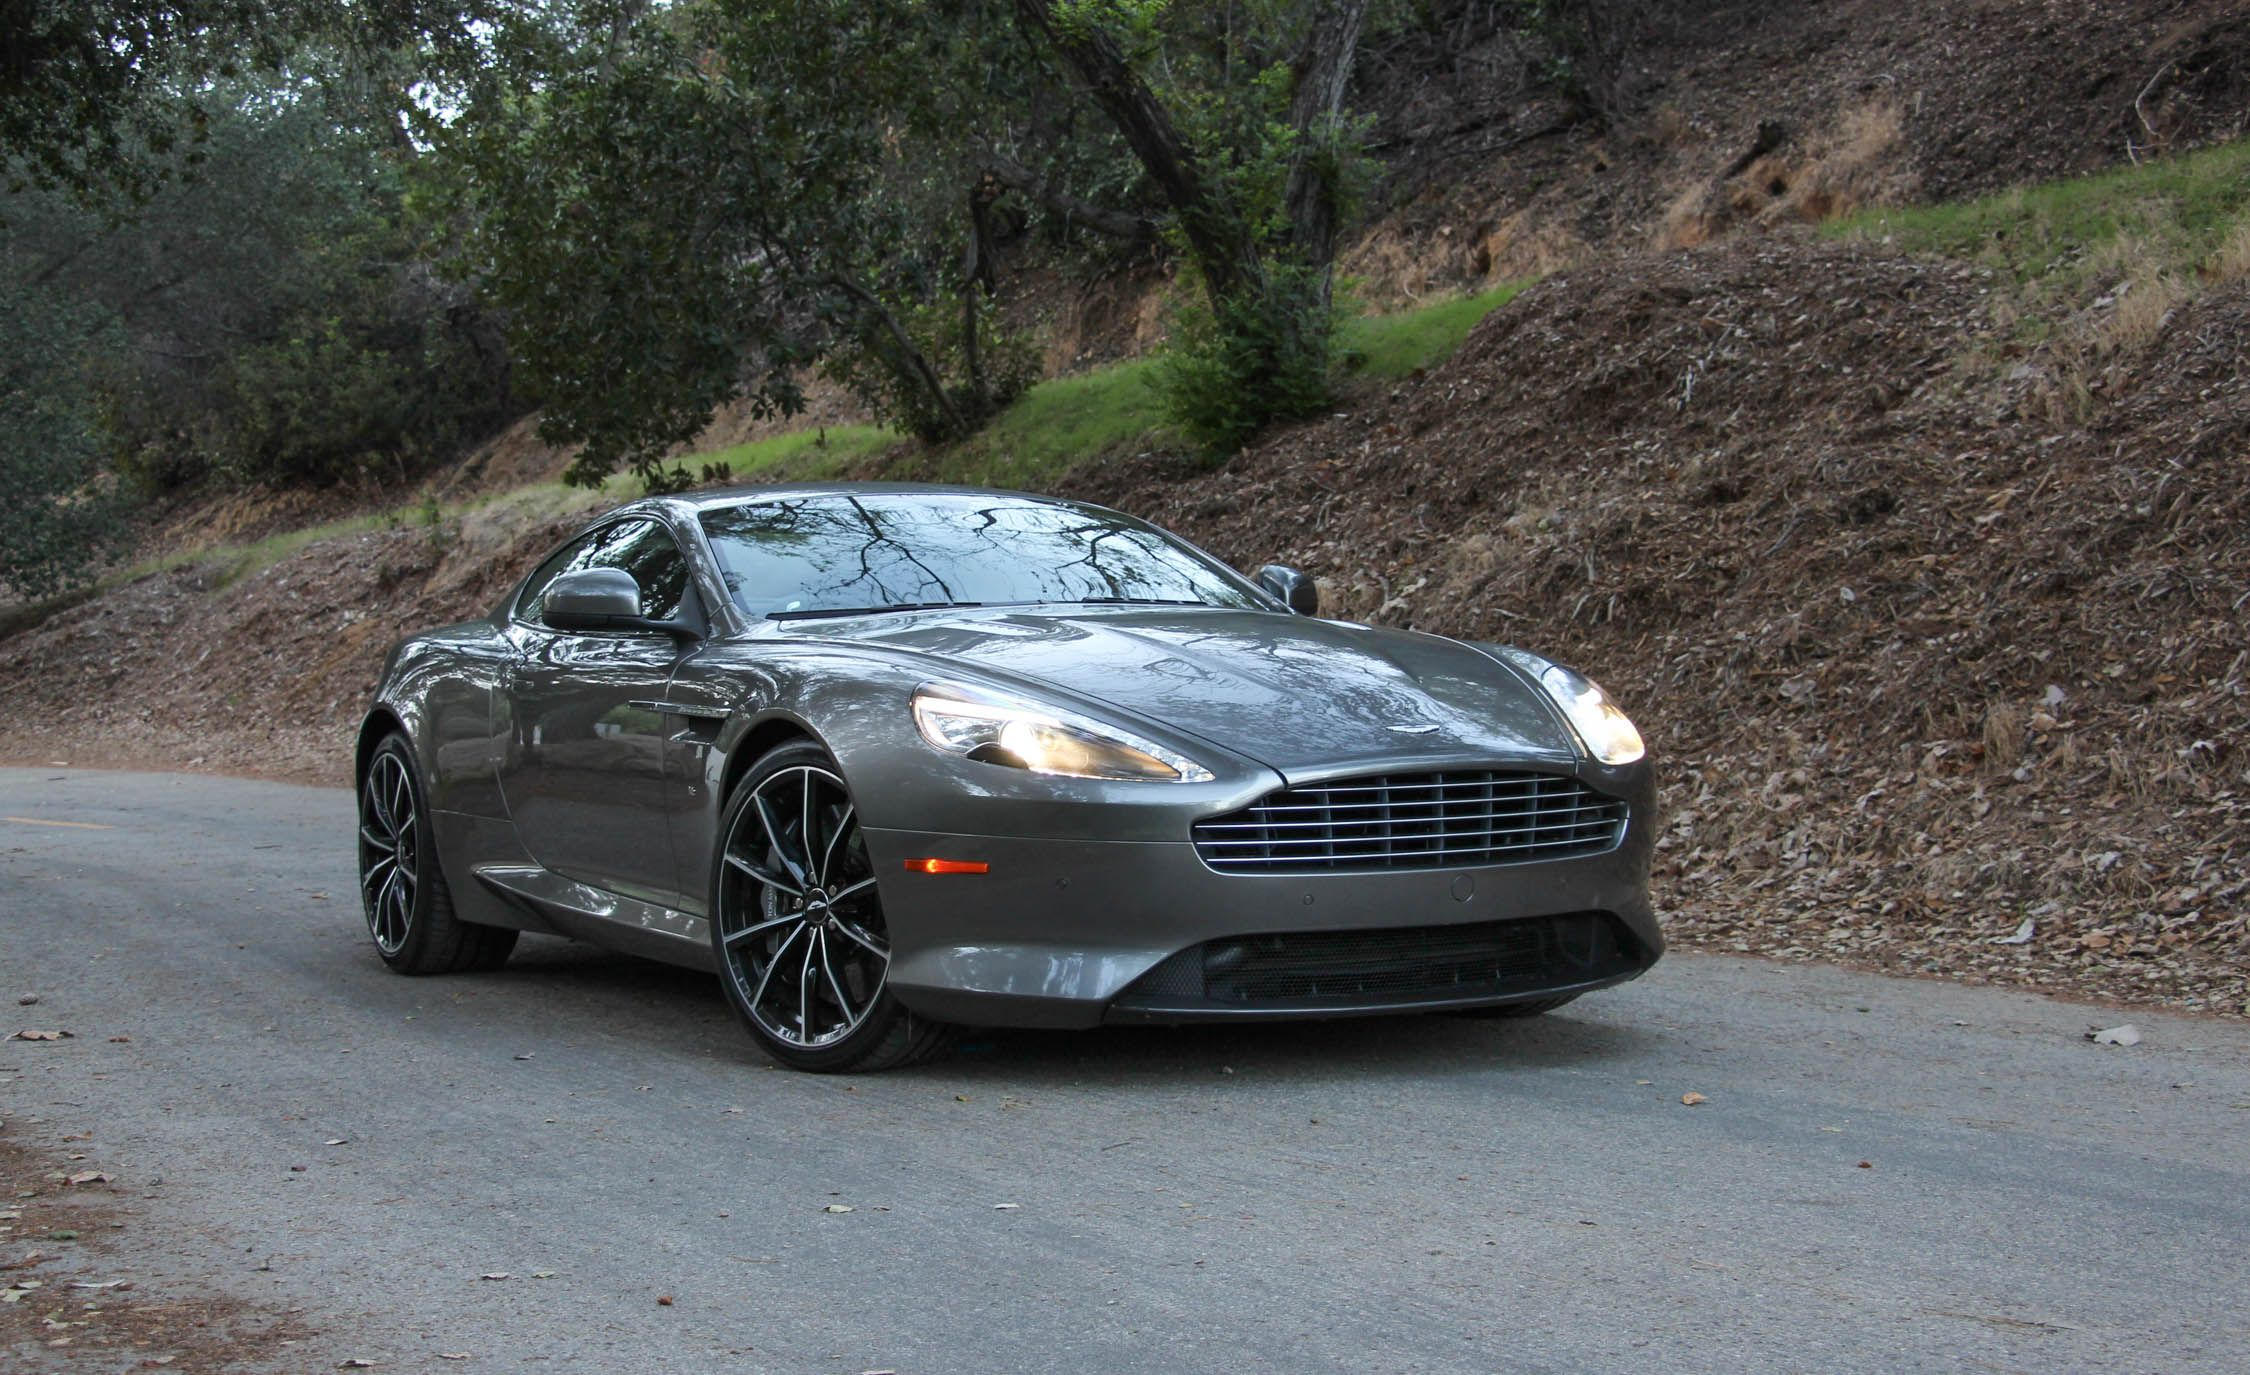 aston martin db9 gt reviews aston martin db9 gt price photos and specs car and driver. Black Bedroom Furniture Sets. Home Design Ideas